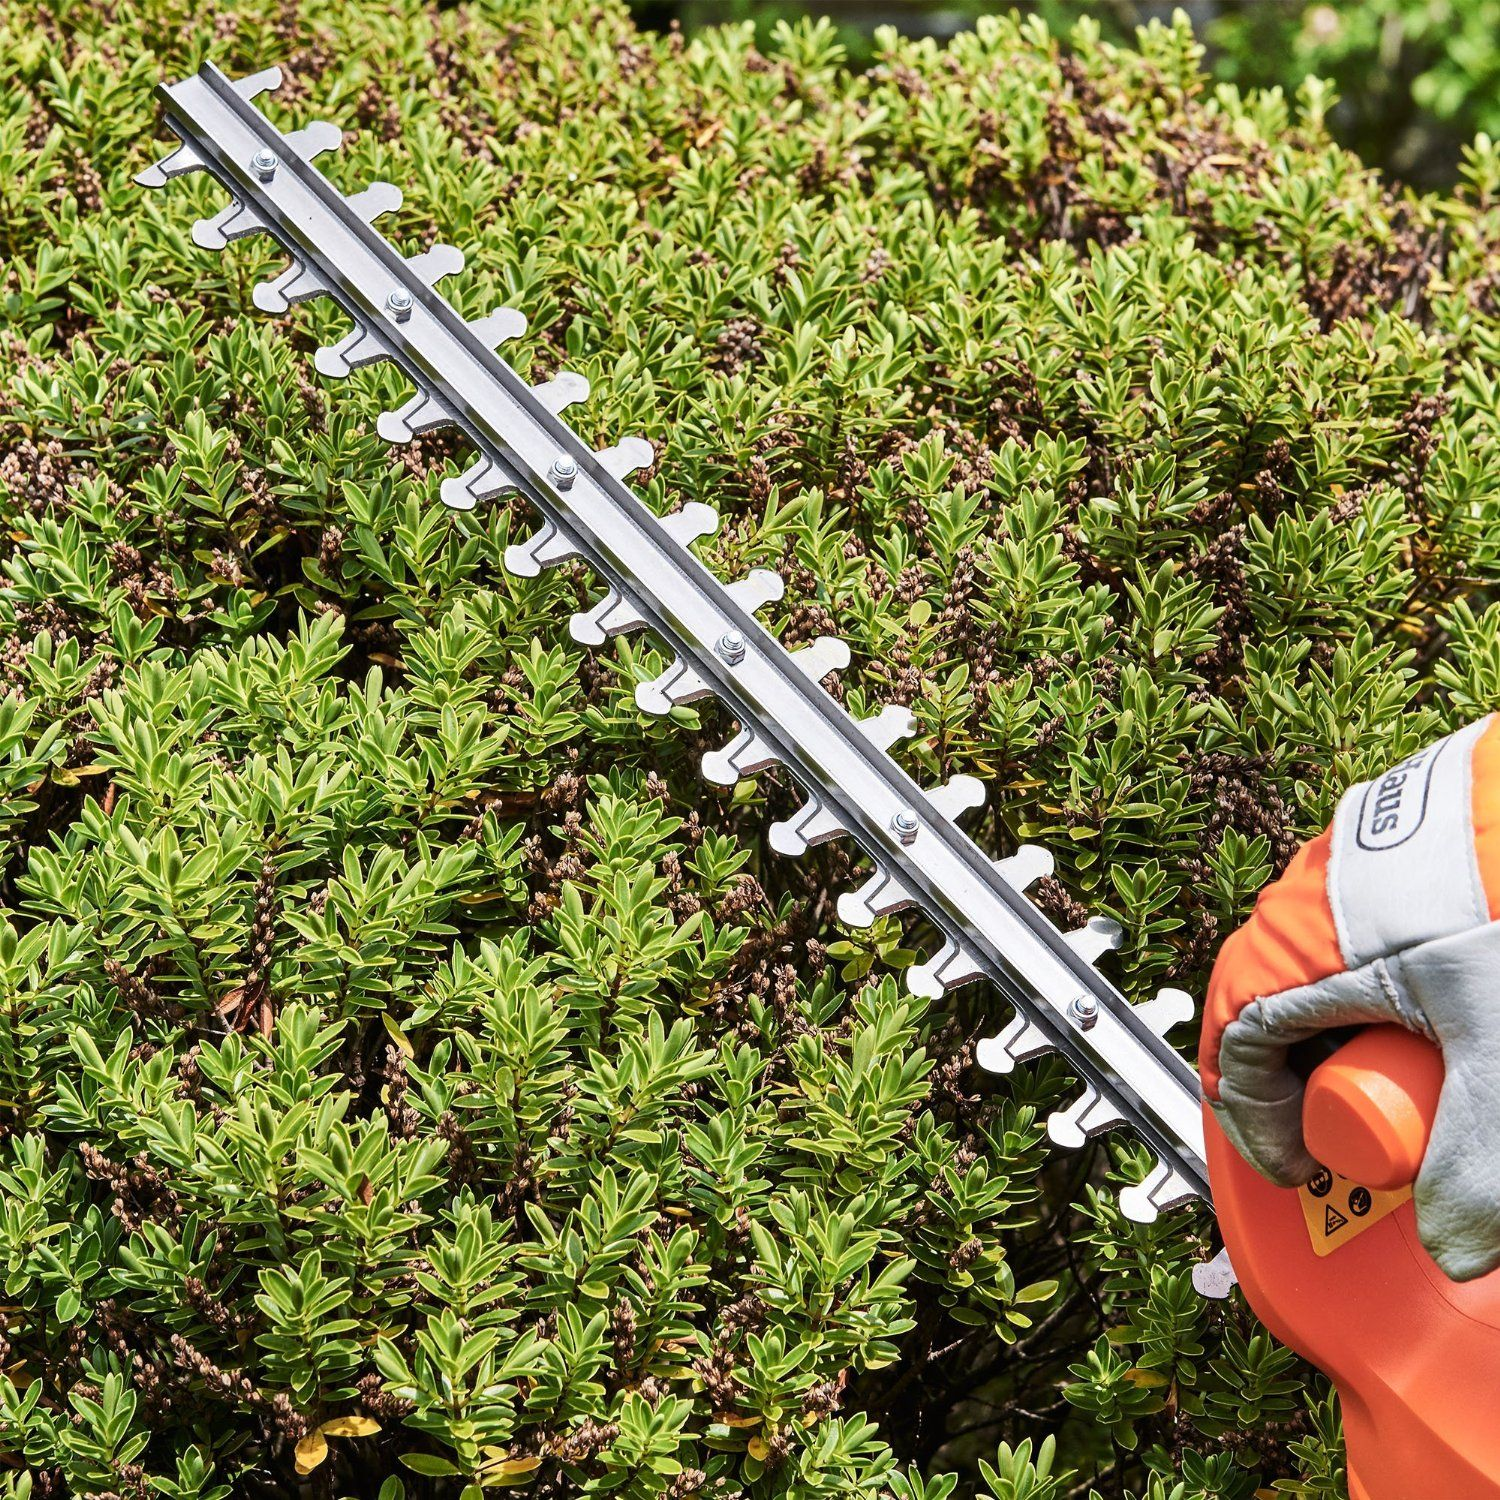 VonHaus 500W Electric Hedge Trimmer/ Cutter with 45cm (17